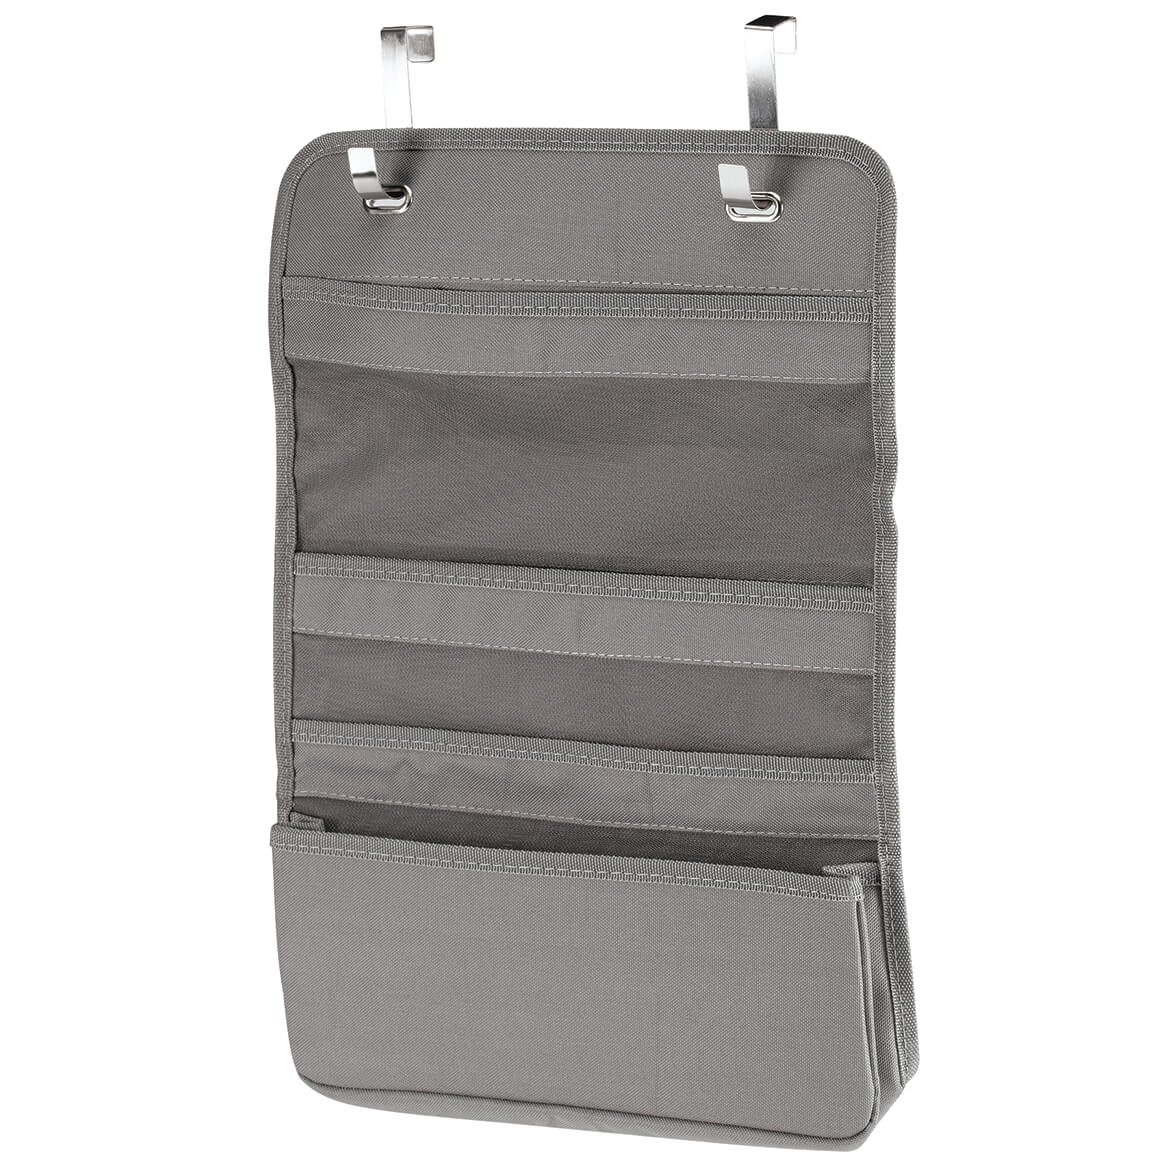 Over The Cabinet Drawer Cleaning Organizer-371353